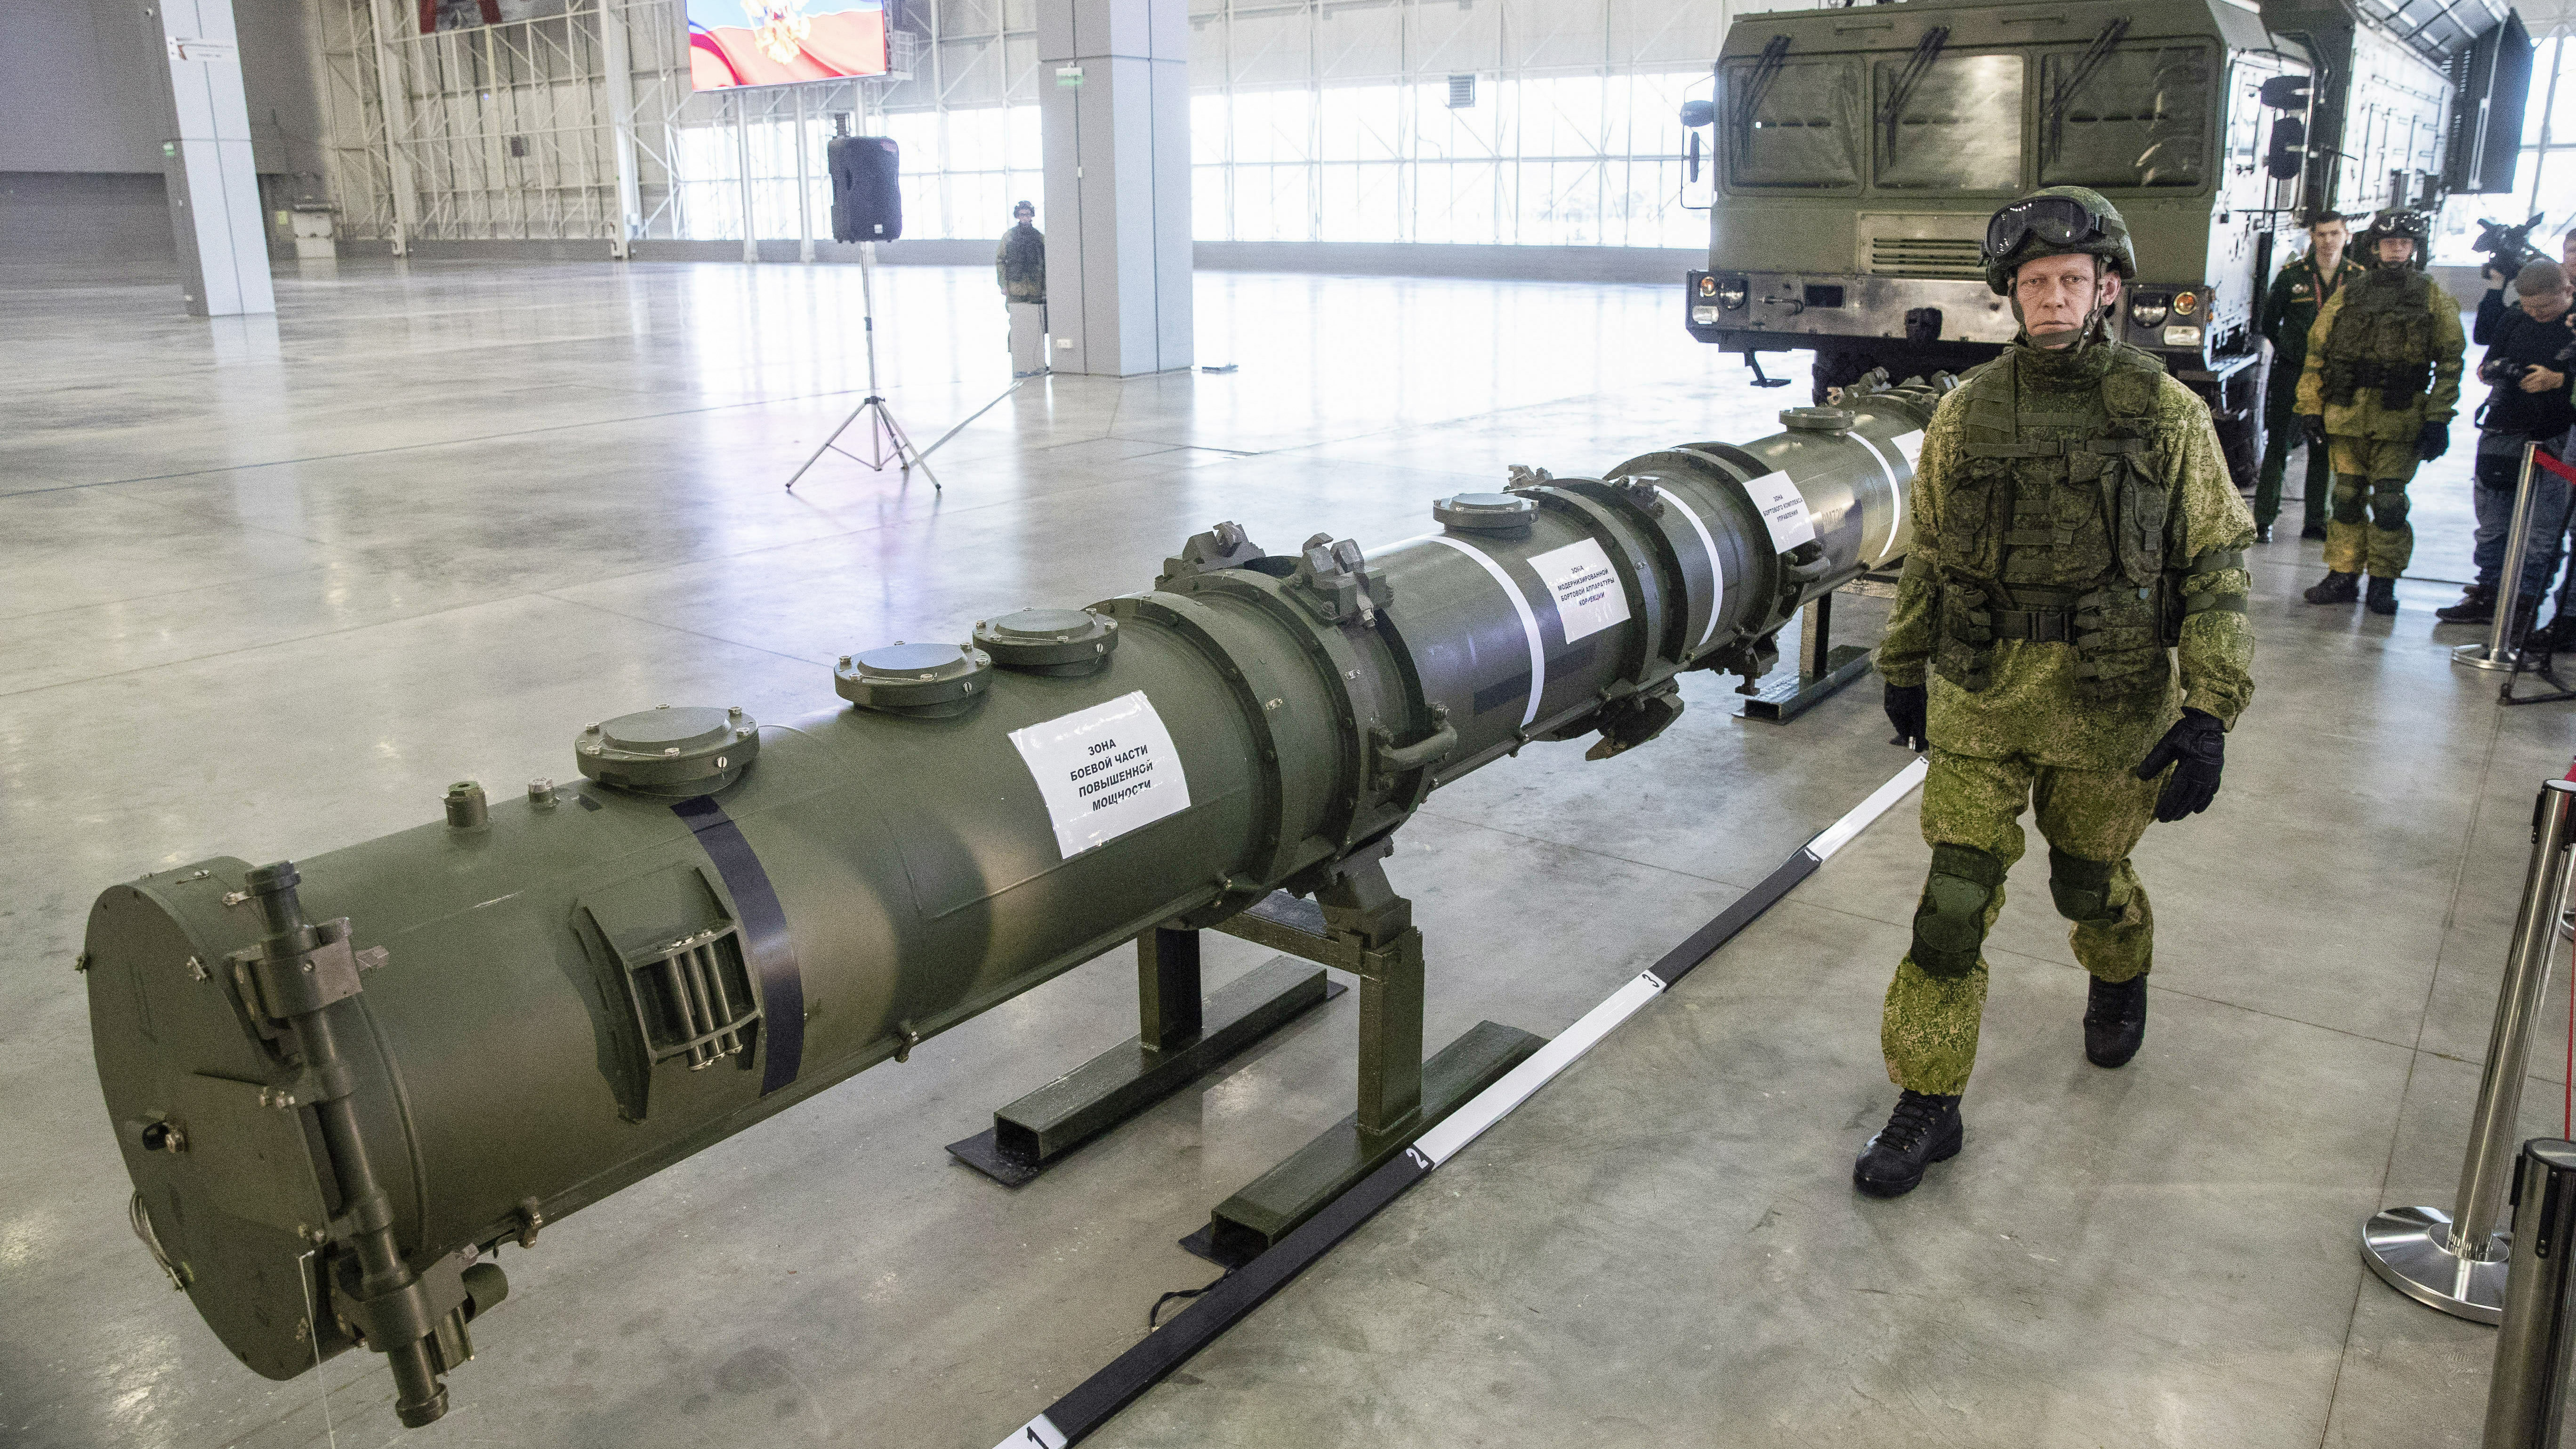 A Russian military officer walks past the 9M729 land-based cruise missile on display with its launcher, right, in Kubinka outside Moscow, Russia, Wednesday, Jan. 23, 2019. The Russian military on Wednesday rolled out its new missile and spelled out its specifications, seeking to dispel the U.S. claim that the weapon violates a key nuclear arms pact. (AP Photo/Pavel Golovkin)